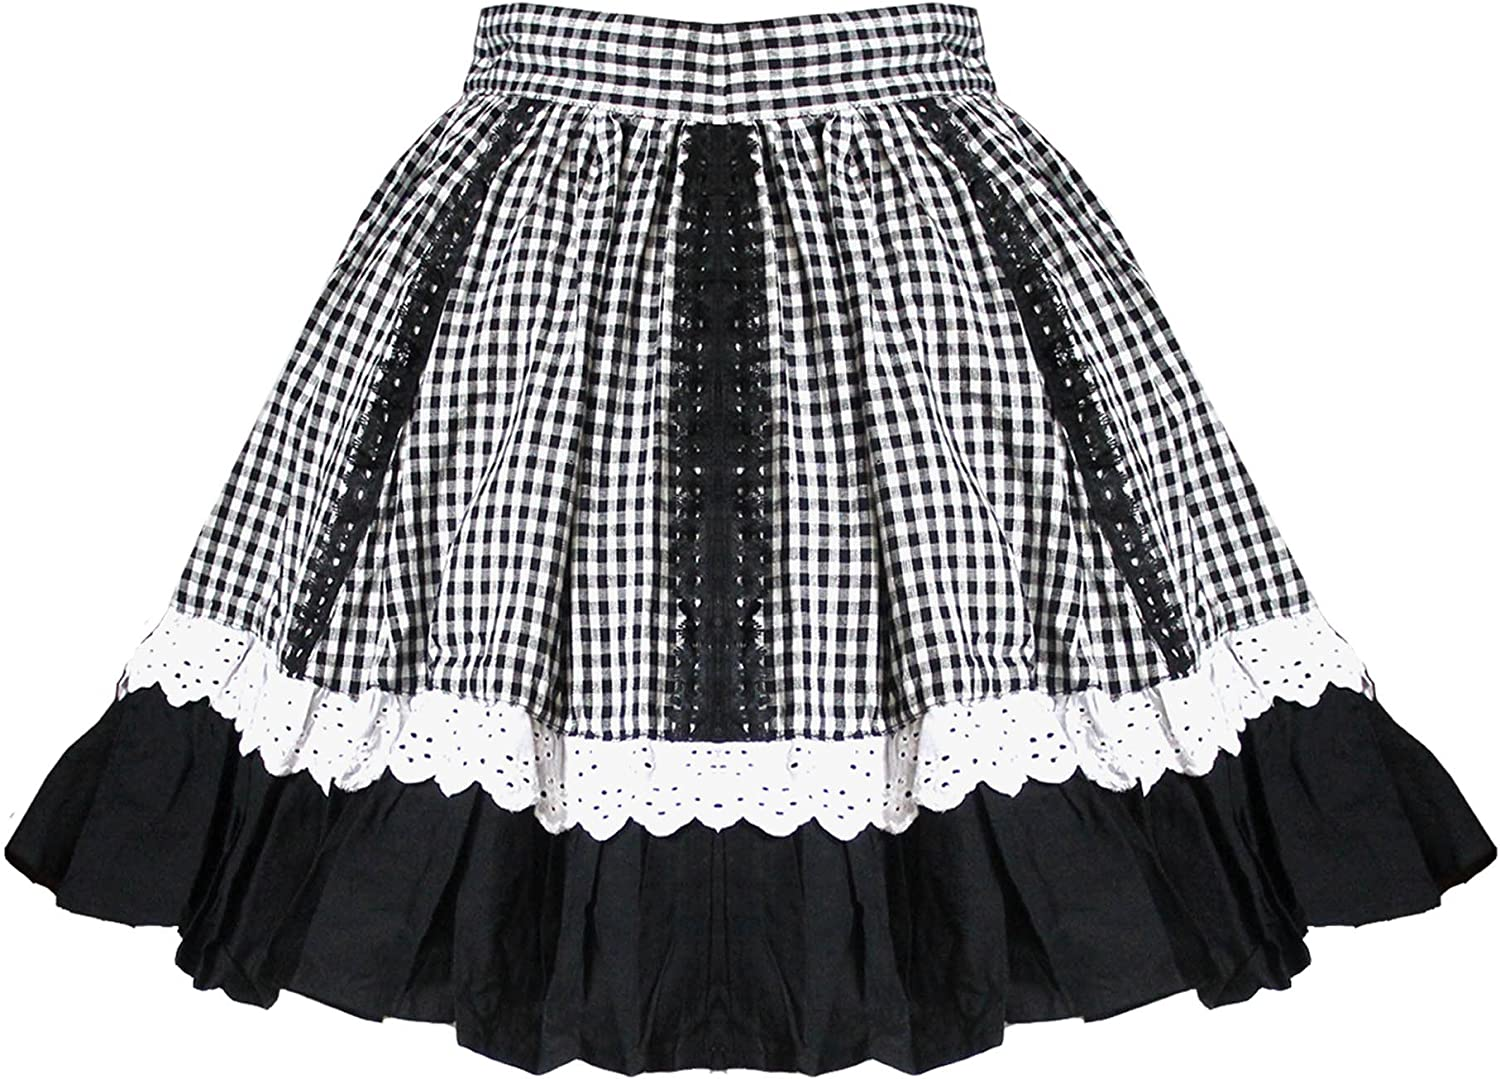 Funhouse Retro 50's Rockabilly Swing Vintage Style Gingham Black & White Checked Skirt